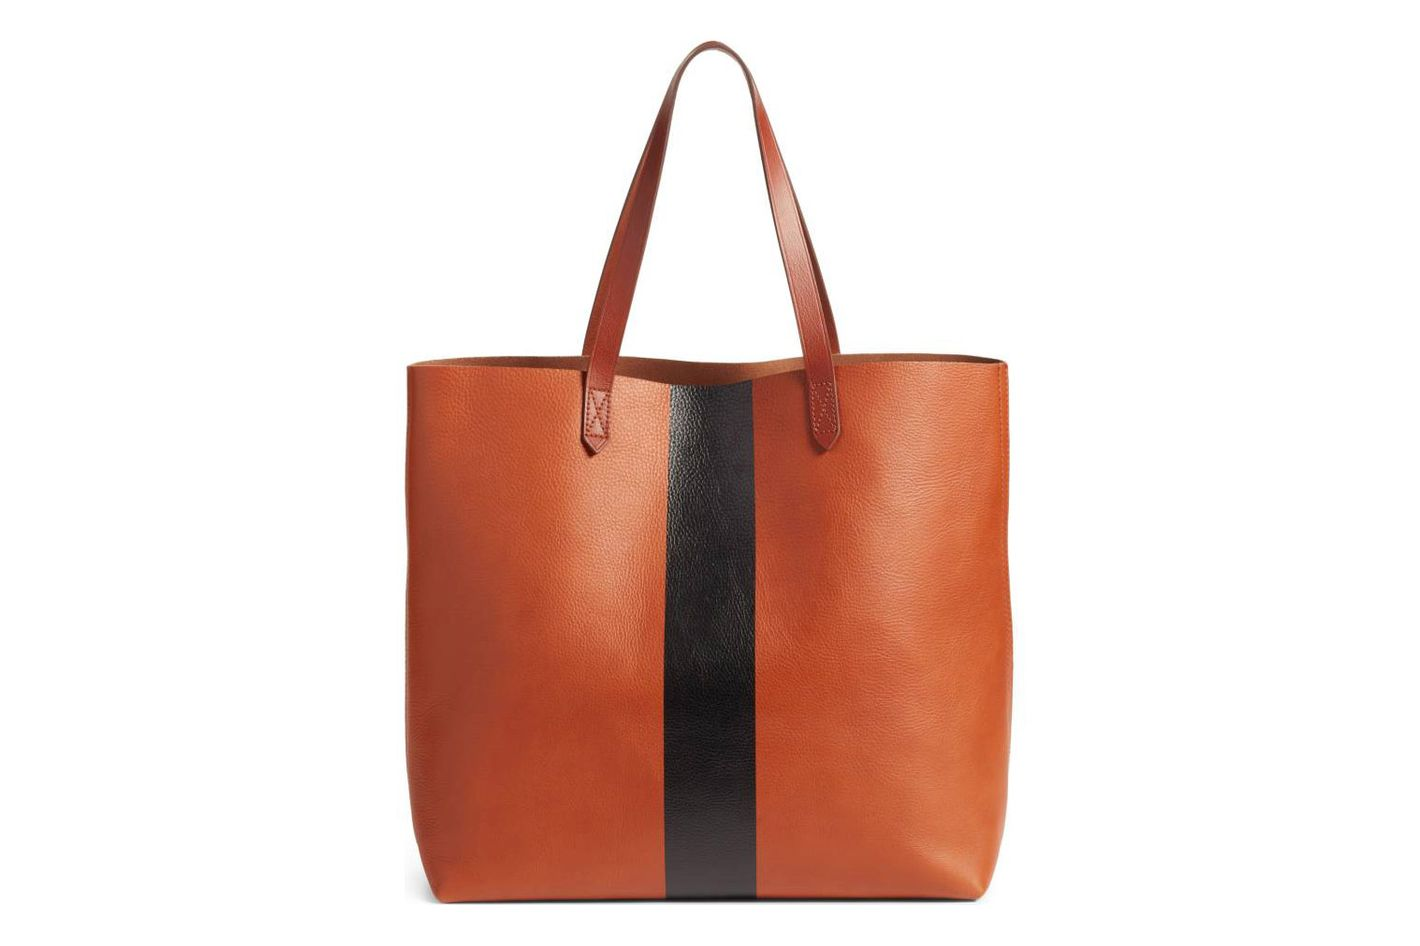 Madewell Paint Stripe Leather Tote